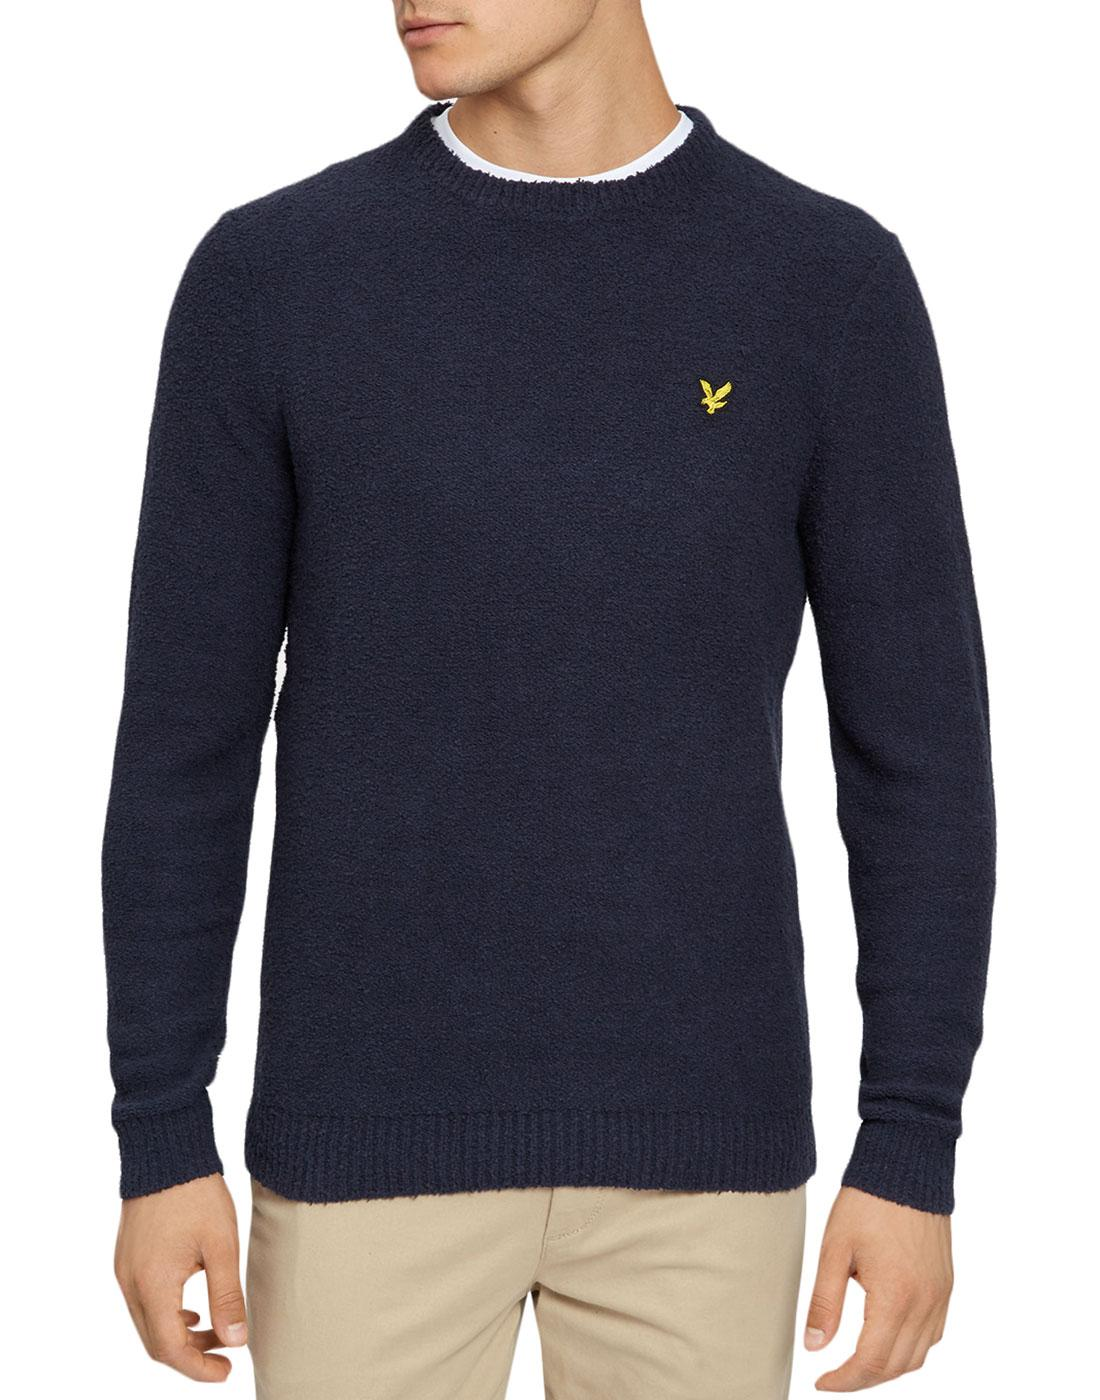 LYLE & SCOTT Retro 70s Terry Towelling Jumper (N)